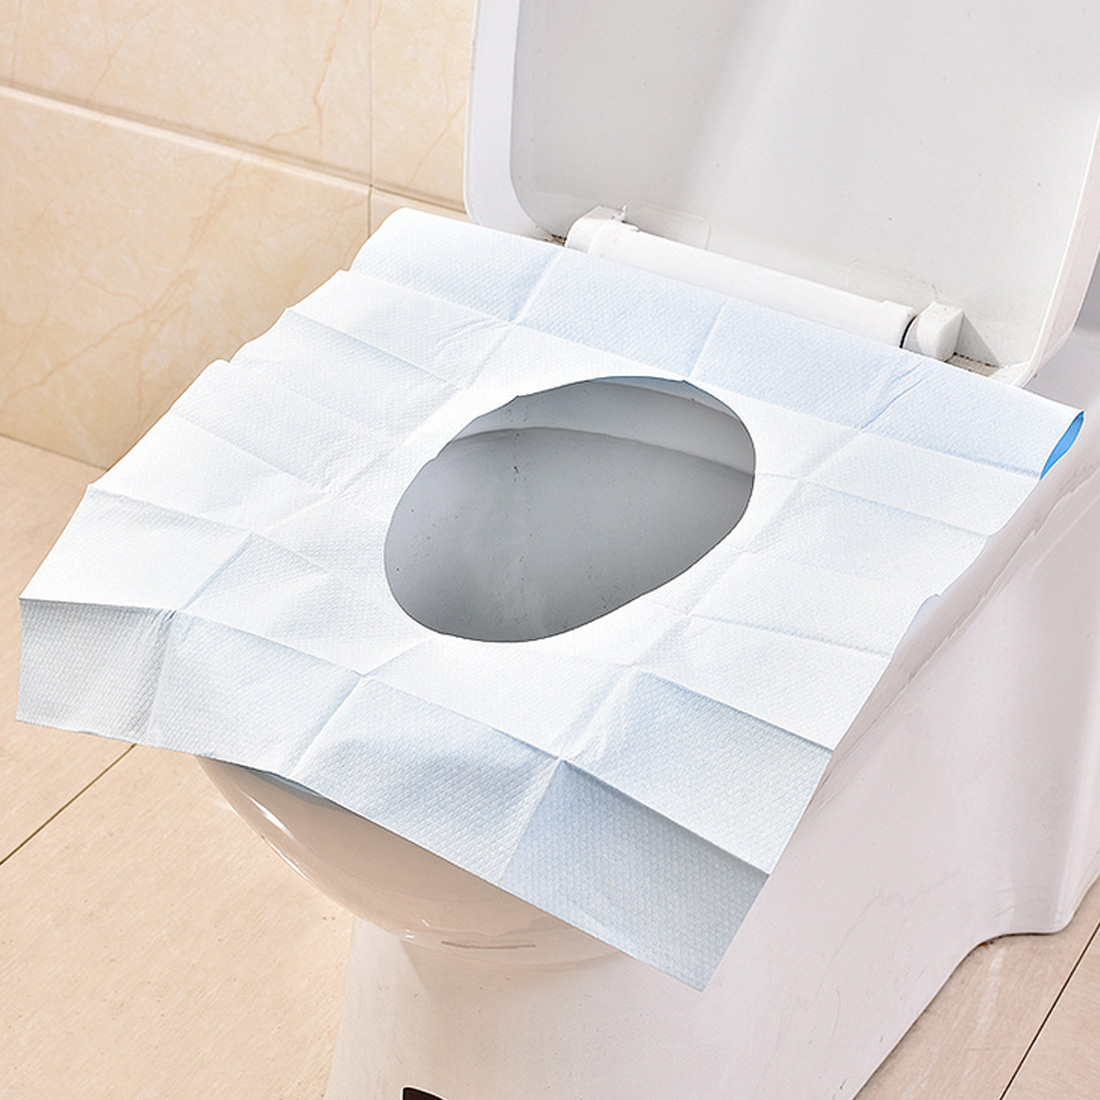 Safety Waterproof Disposable Toilet Pad Toilet Seat Cover Mat for Travel Pregnant Women Antibacterial Pad Bathroom Accessories